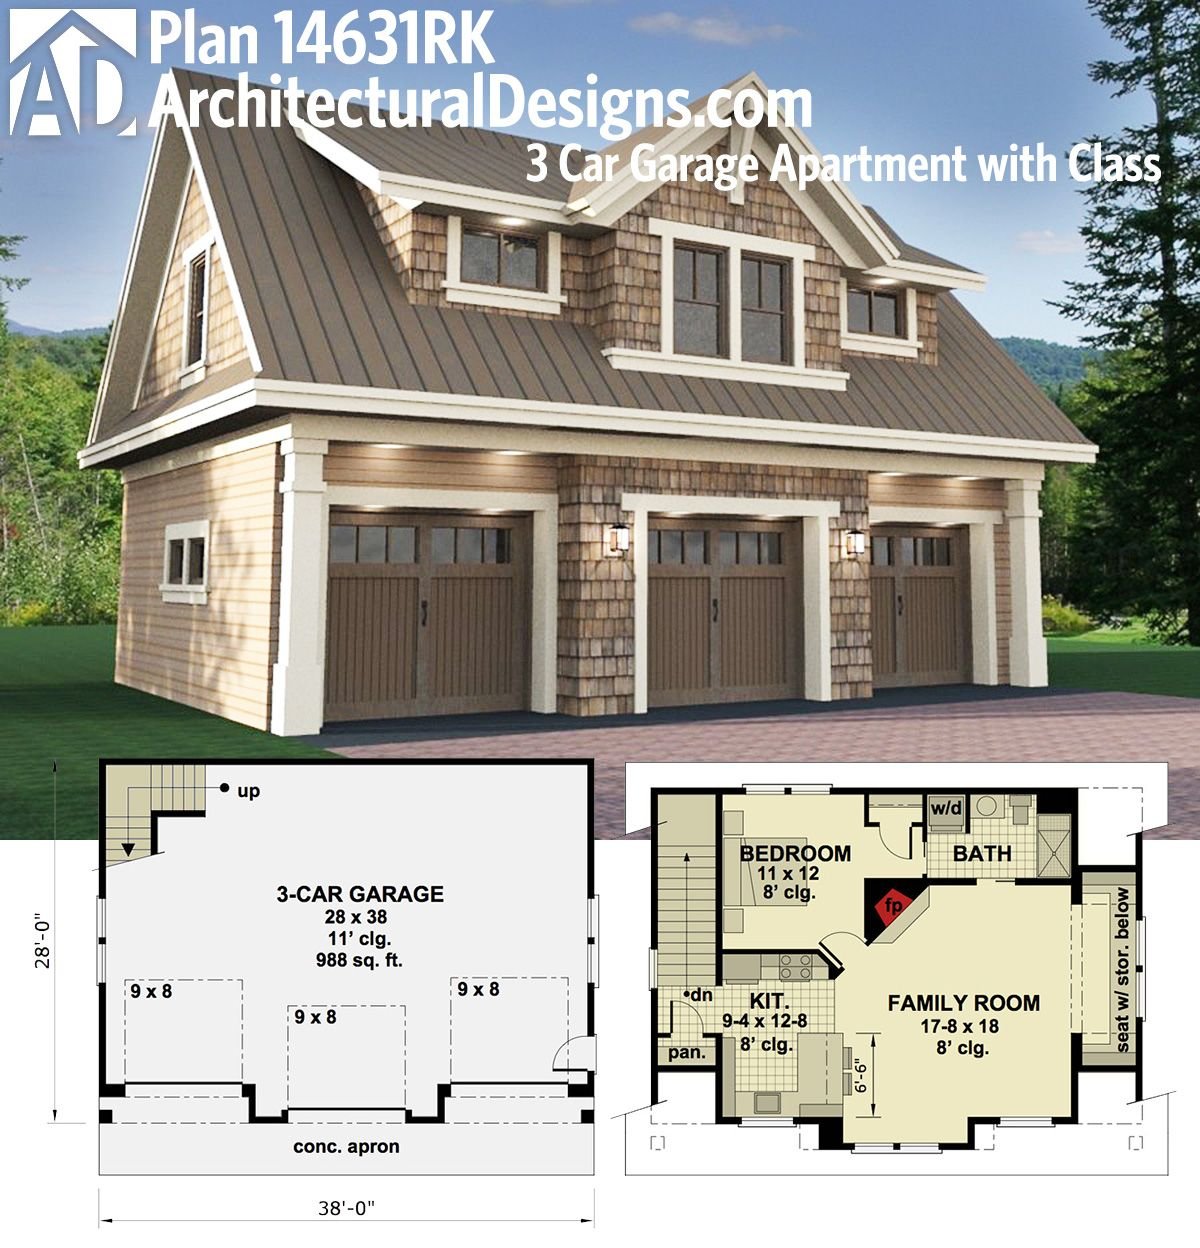 Plan 14631rk 3 car garage apartment with class for How big is two car garage